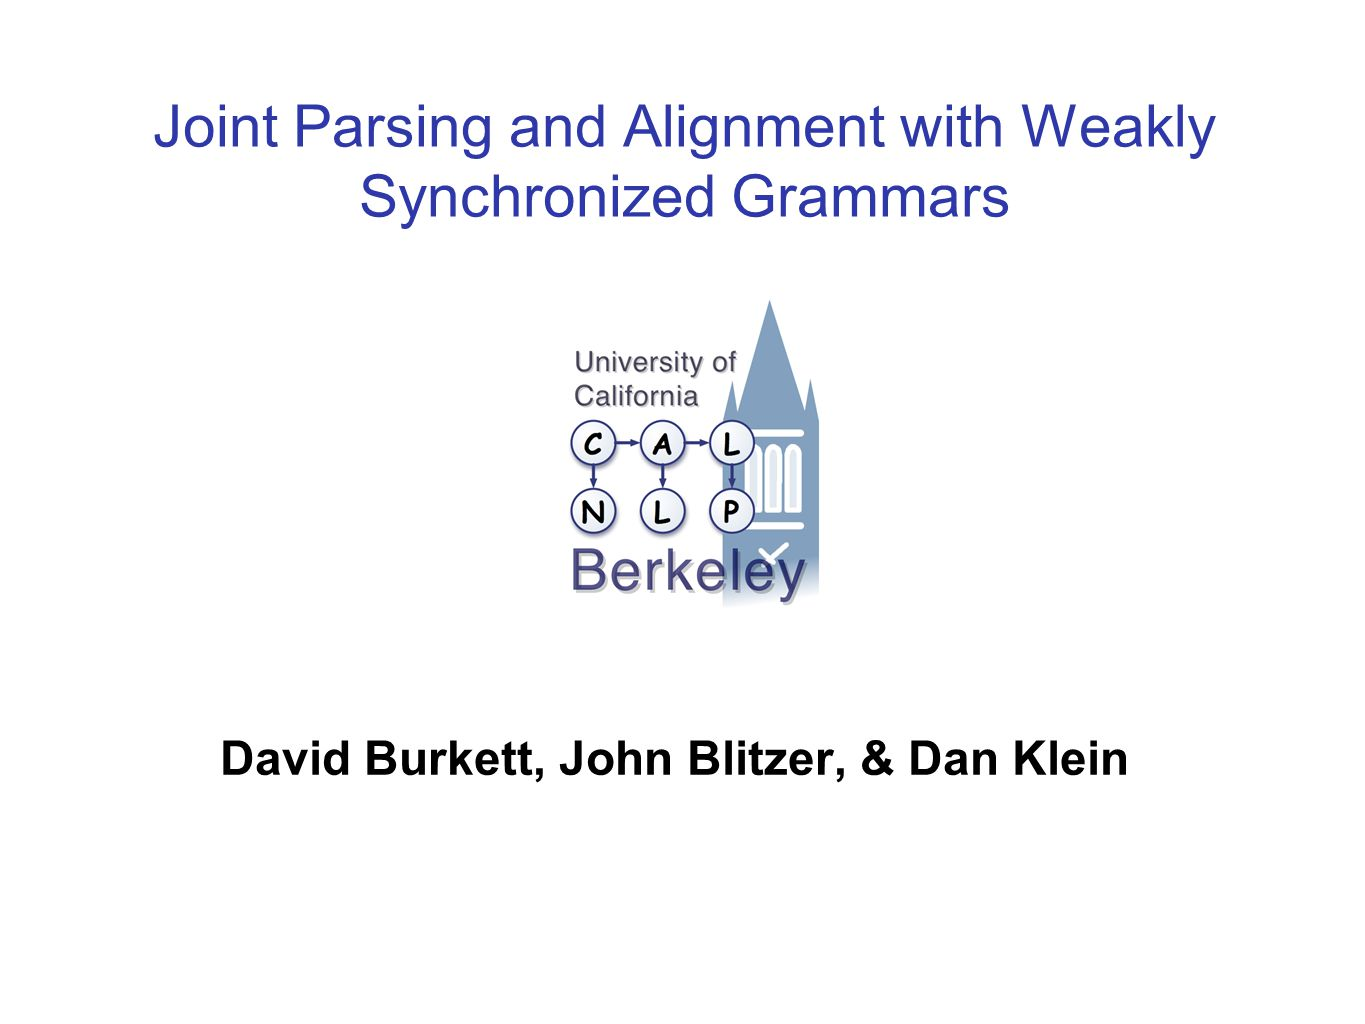 Joint Parsing and Alignment with Weakly Synchronized Grammars David Burkett, John Blitzer, & Dan Klein TexPoint fonts used in EMF.